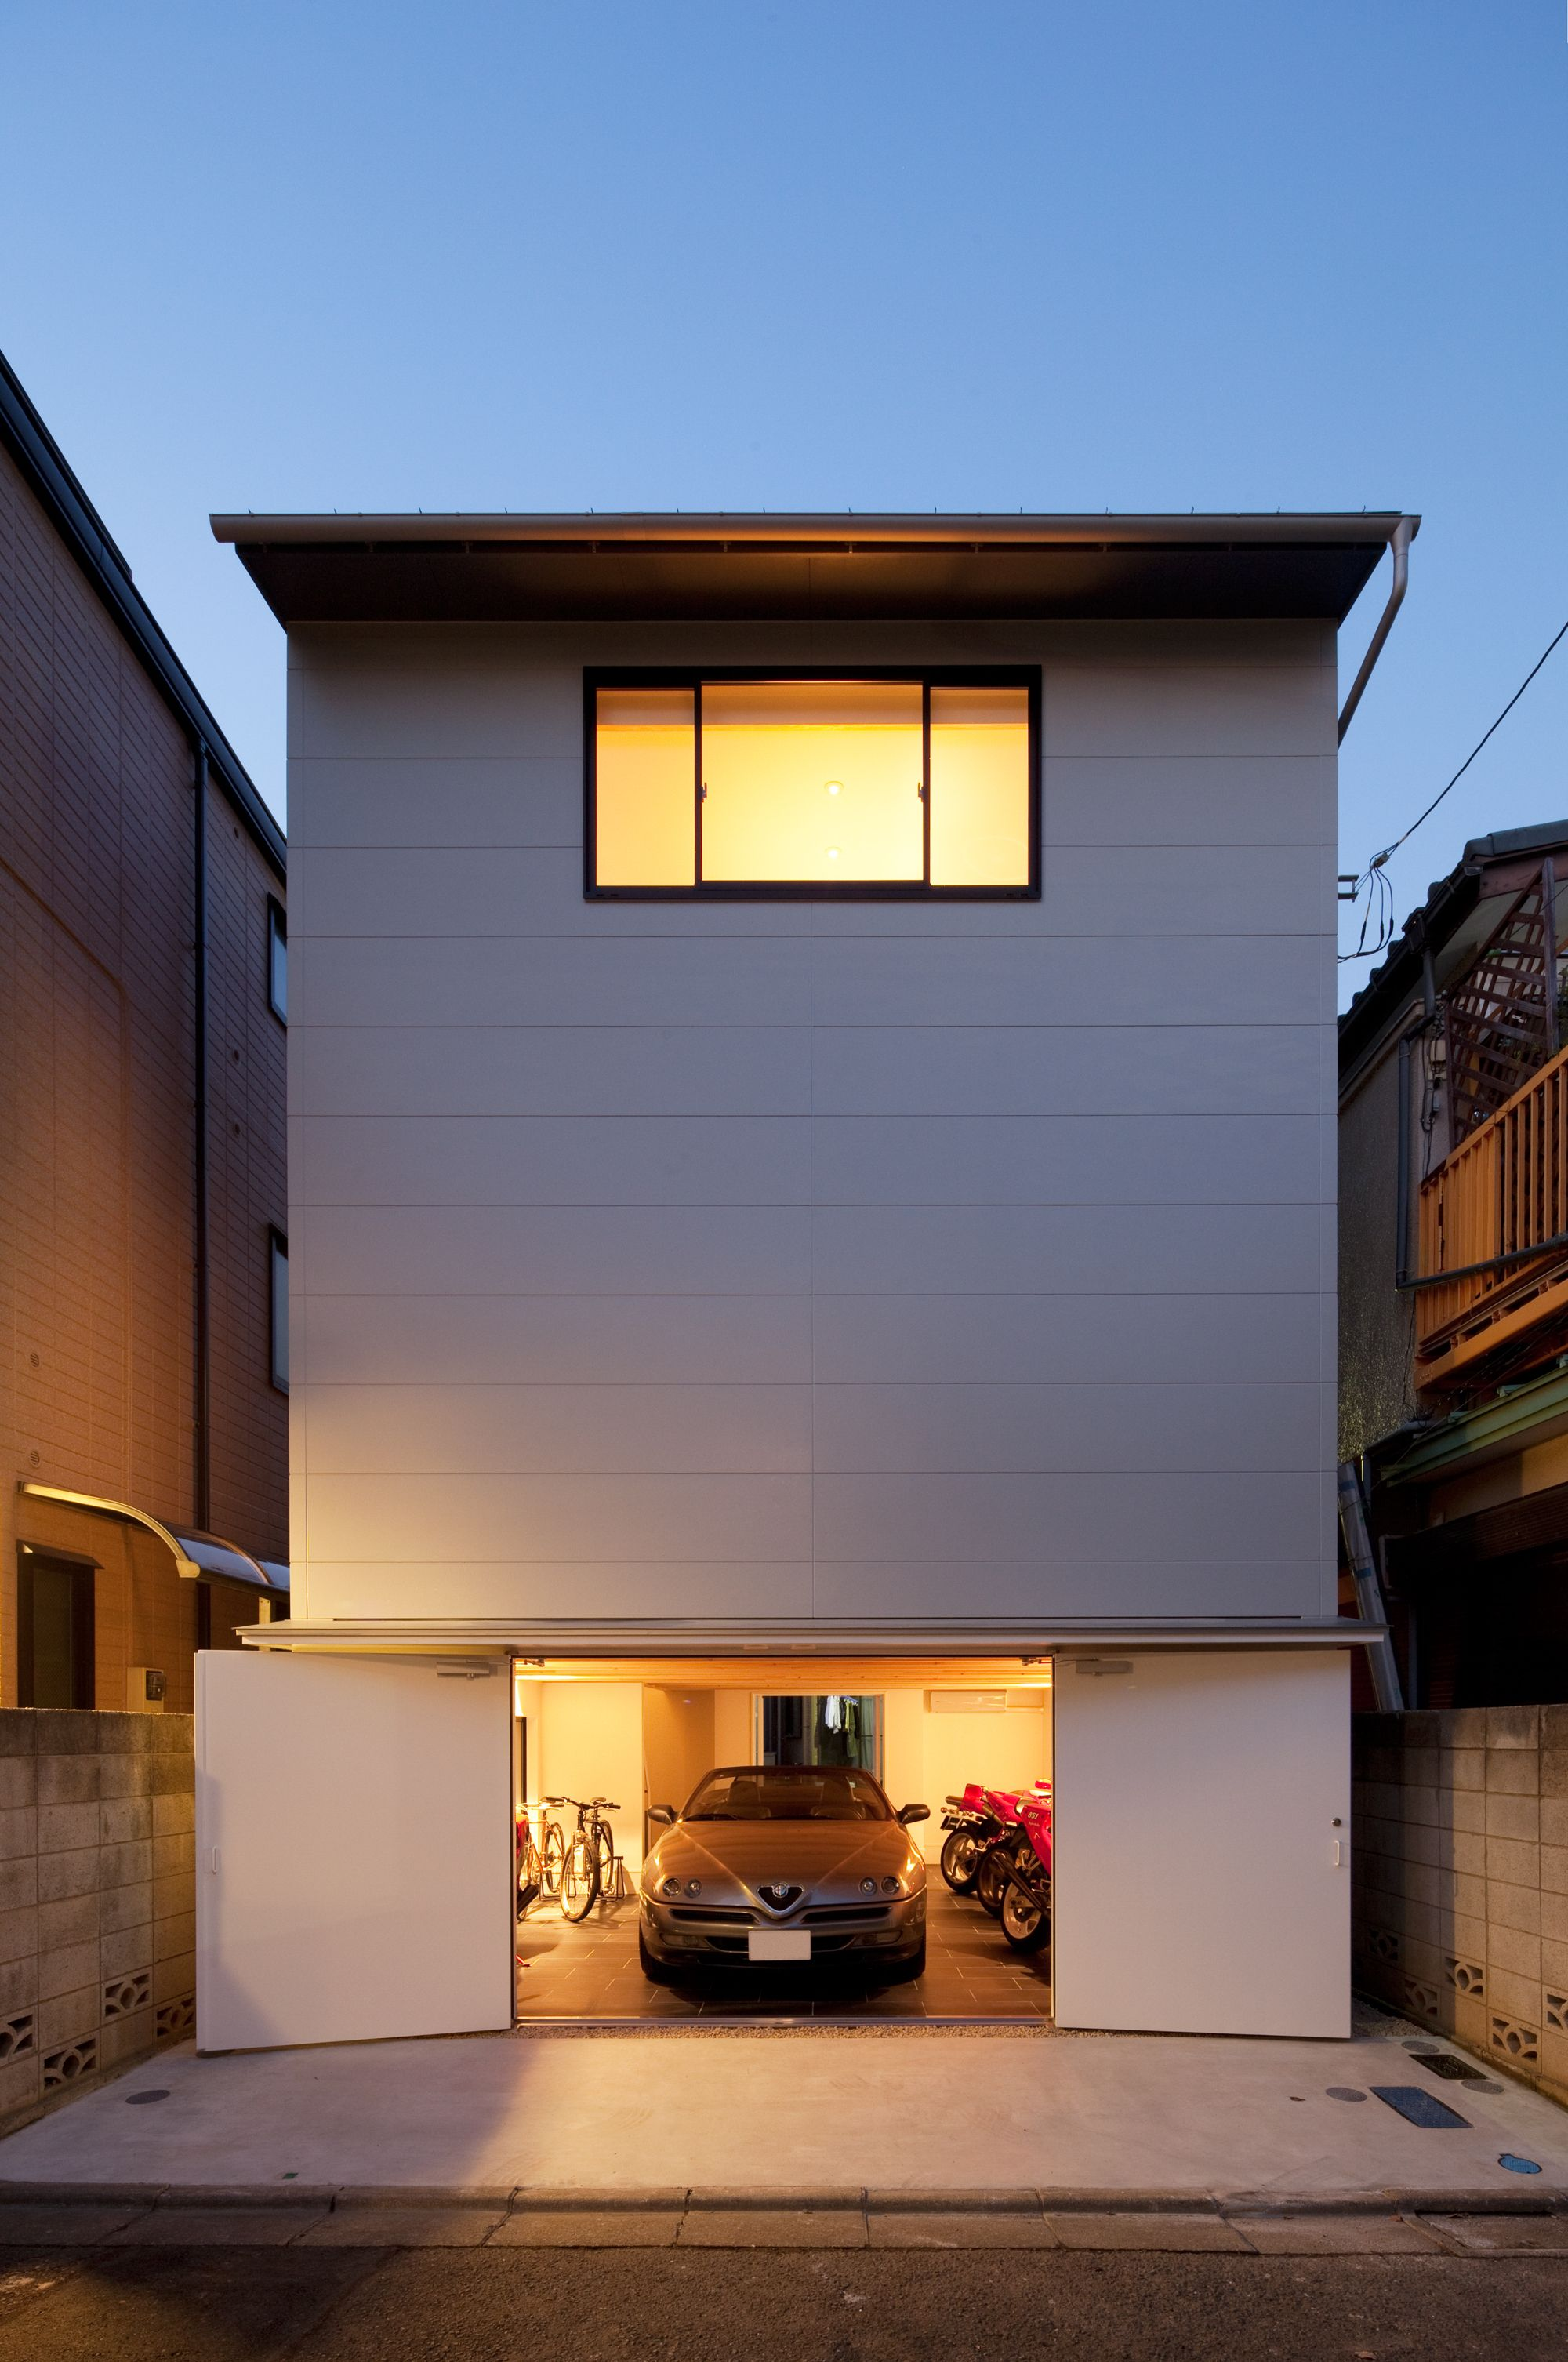 Pin By Margorete Demarchi On Pinterest Garage House And